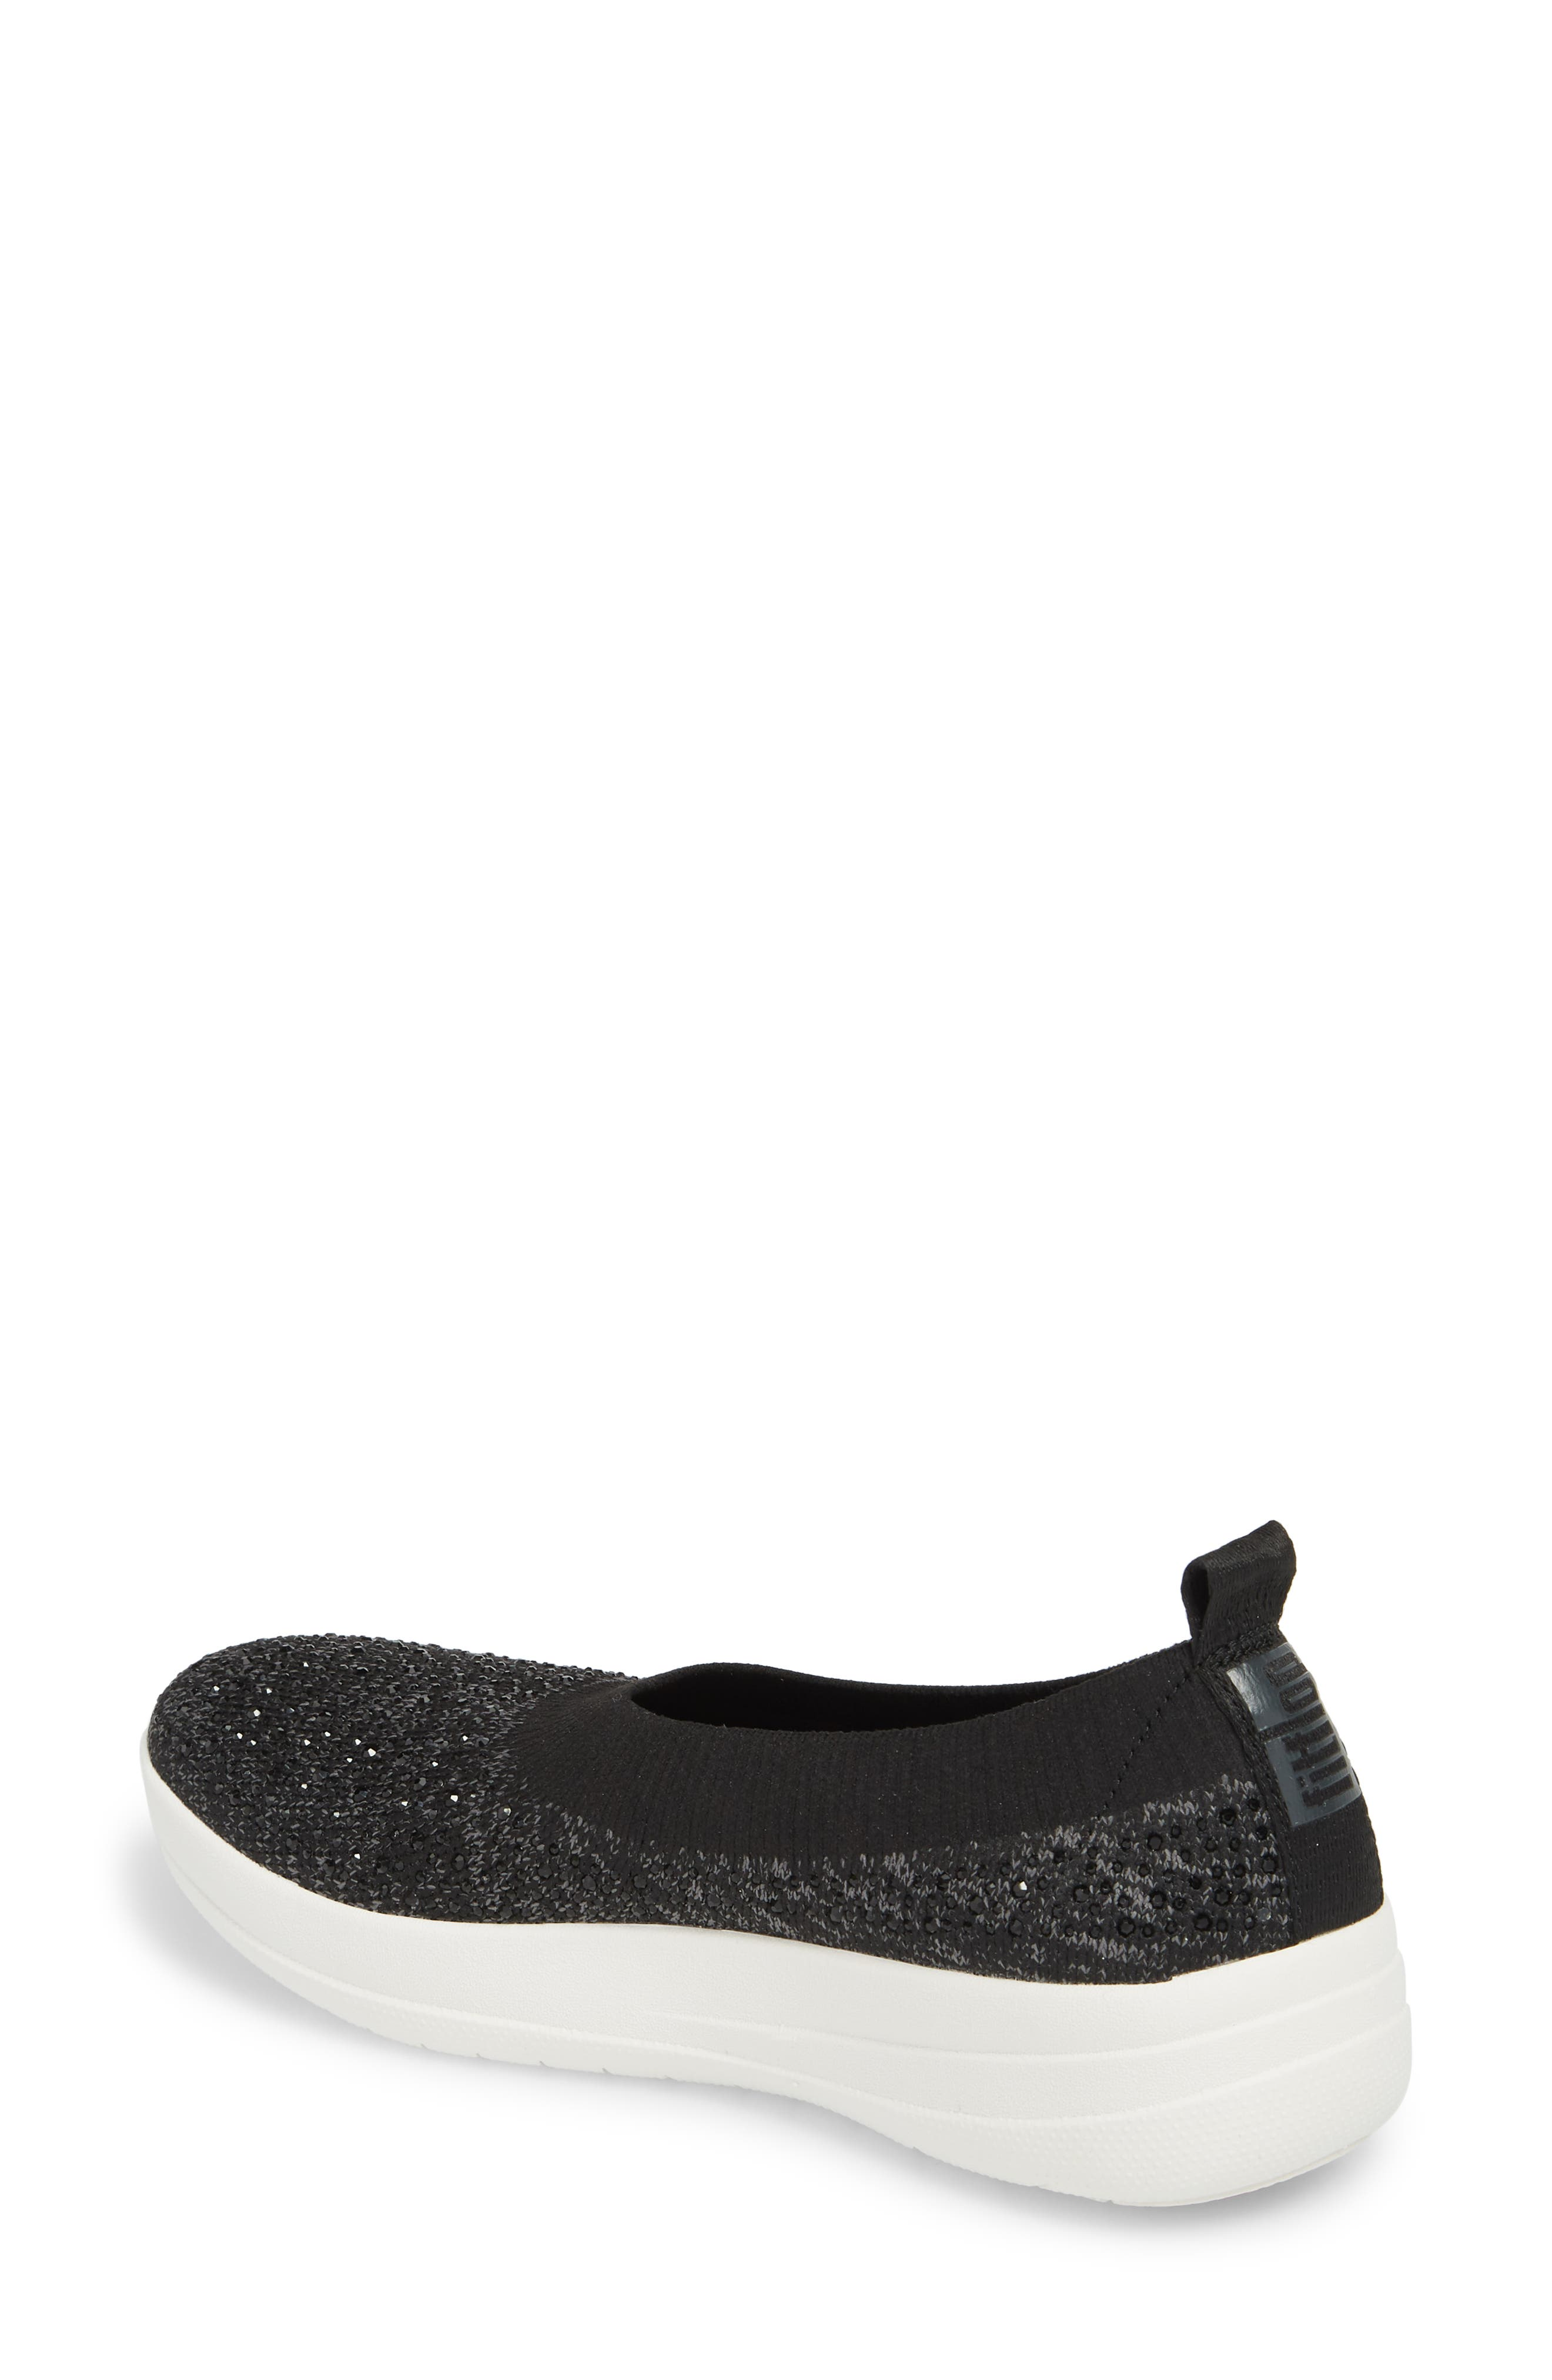 Uberknit Slip-On Sneaker,                             Alternate thumbnail 2, color,                             BLACK/ SOFT GREY